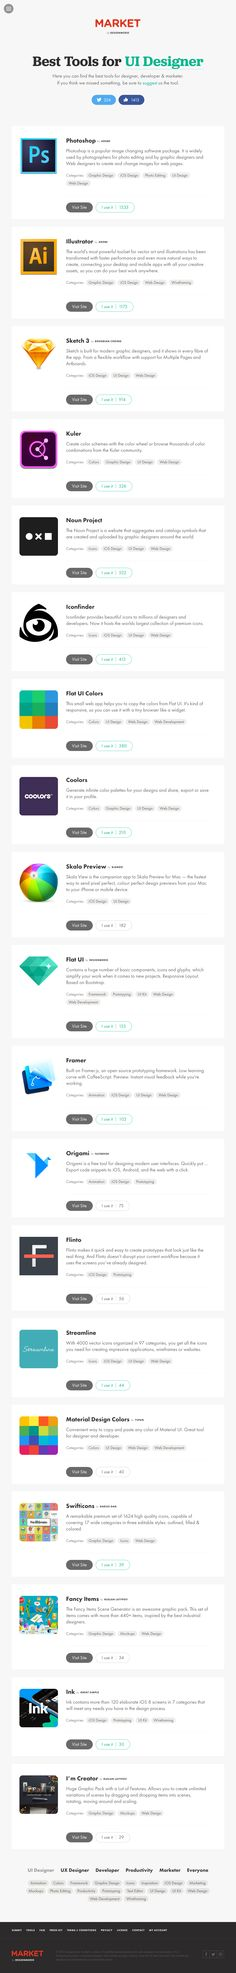 Dribbble - best-tools-for-designer-fullsize.png by Market by Designmodo